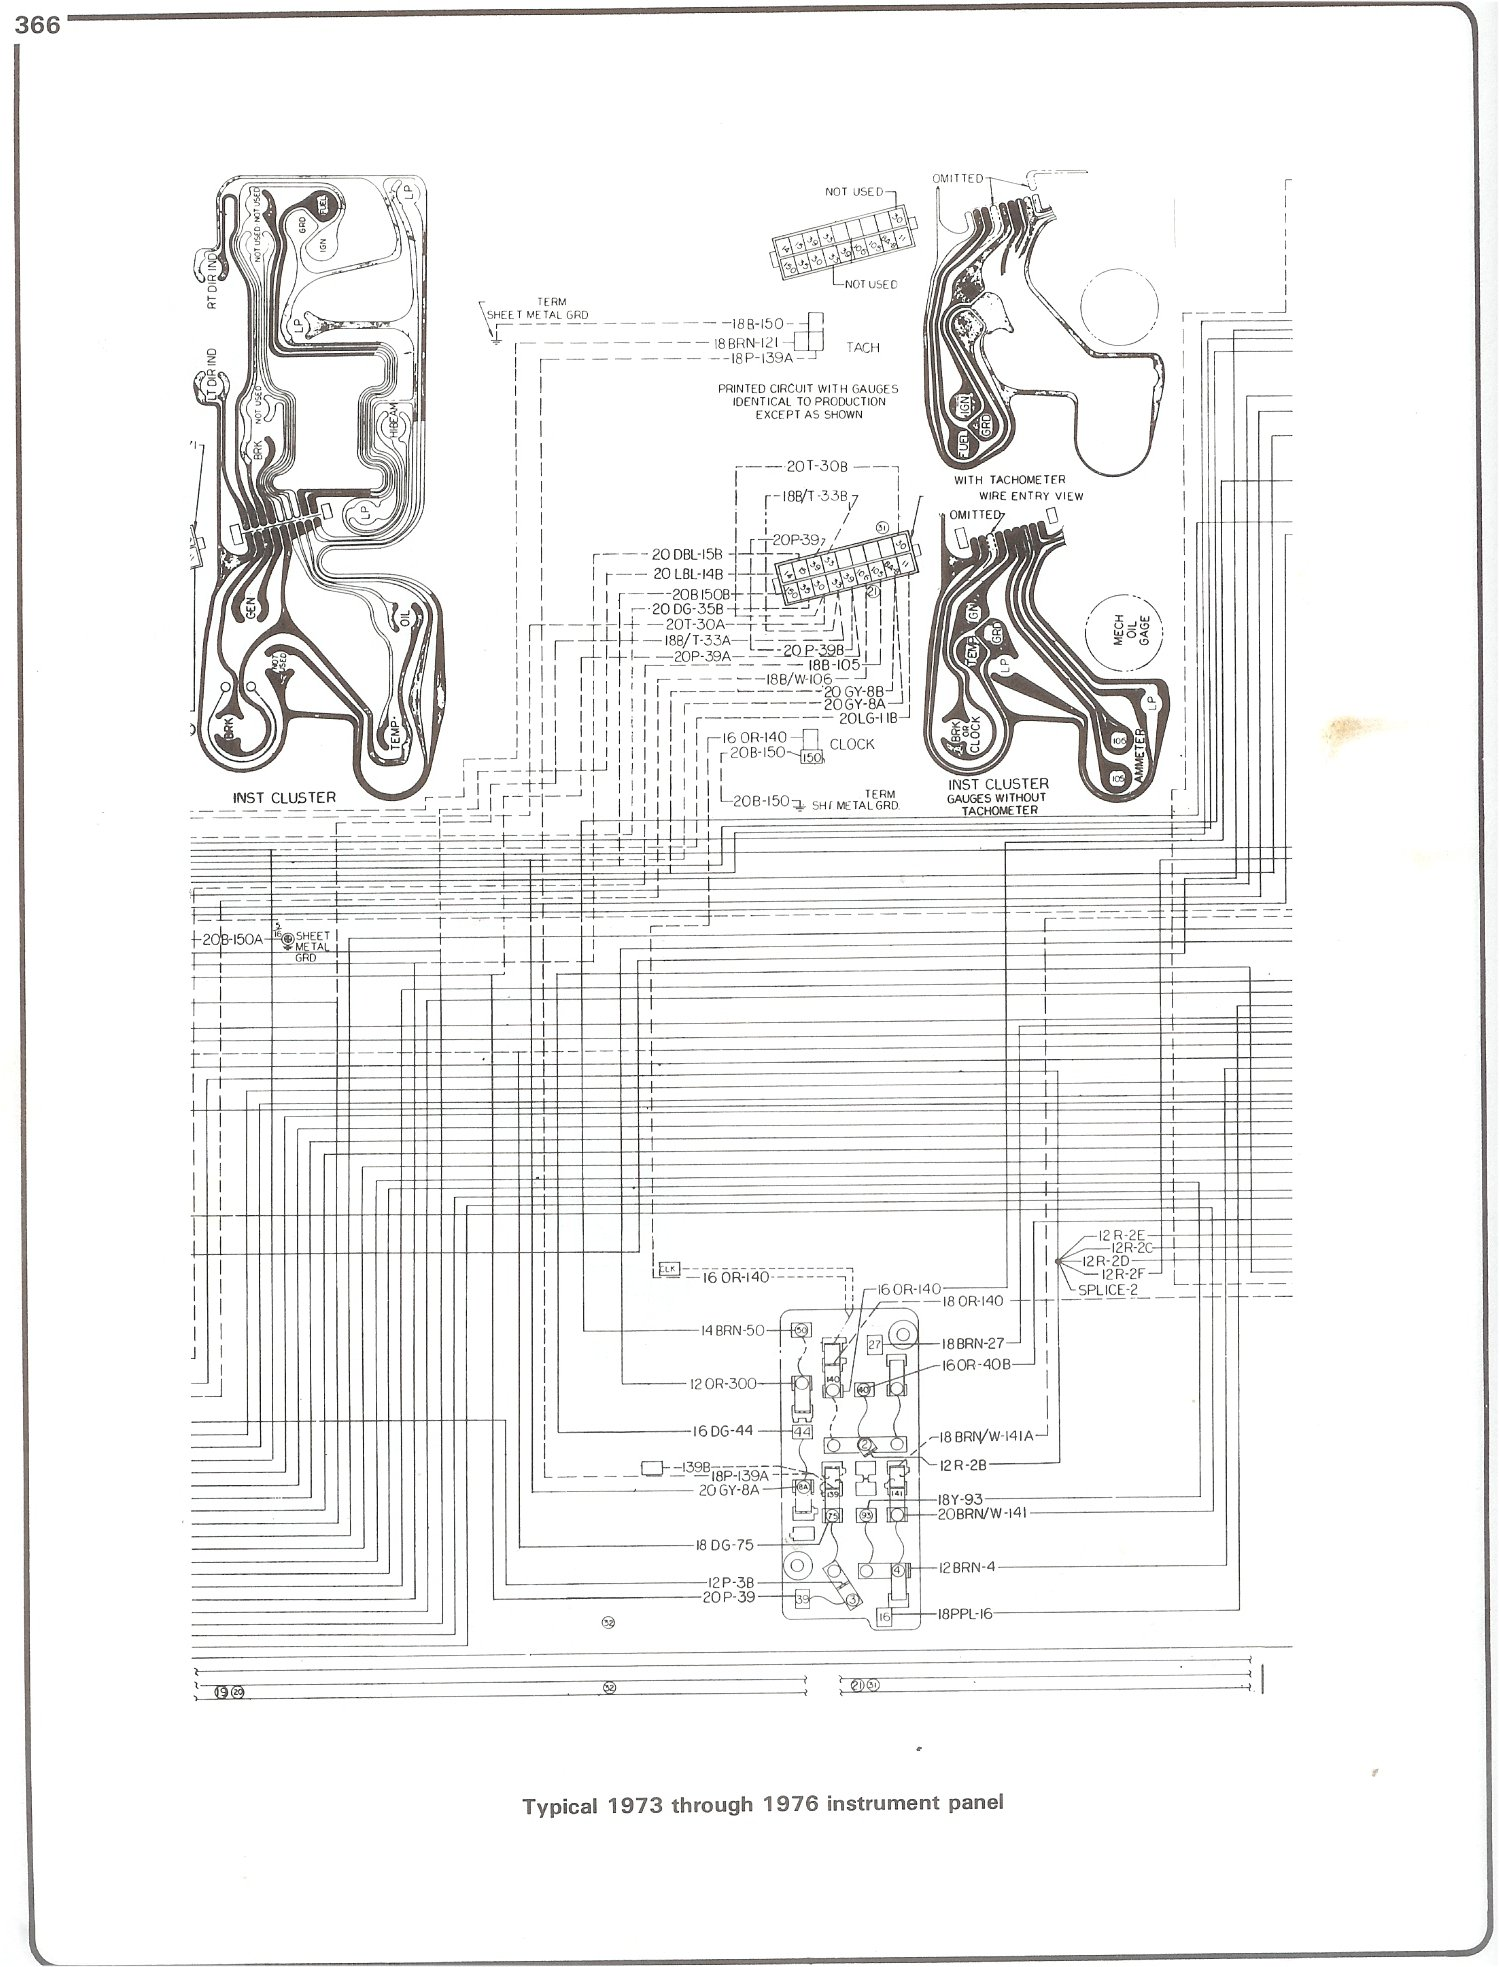 77 chevy wiring diagram another blog about wiring diagram u2022 rh ok2  infoservice ru 70 Nova Wiring Diagram 68 Nova Wiring Diagram